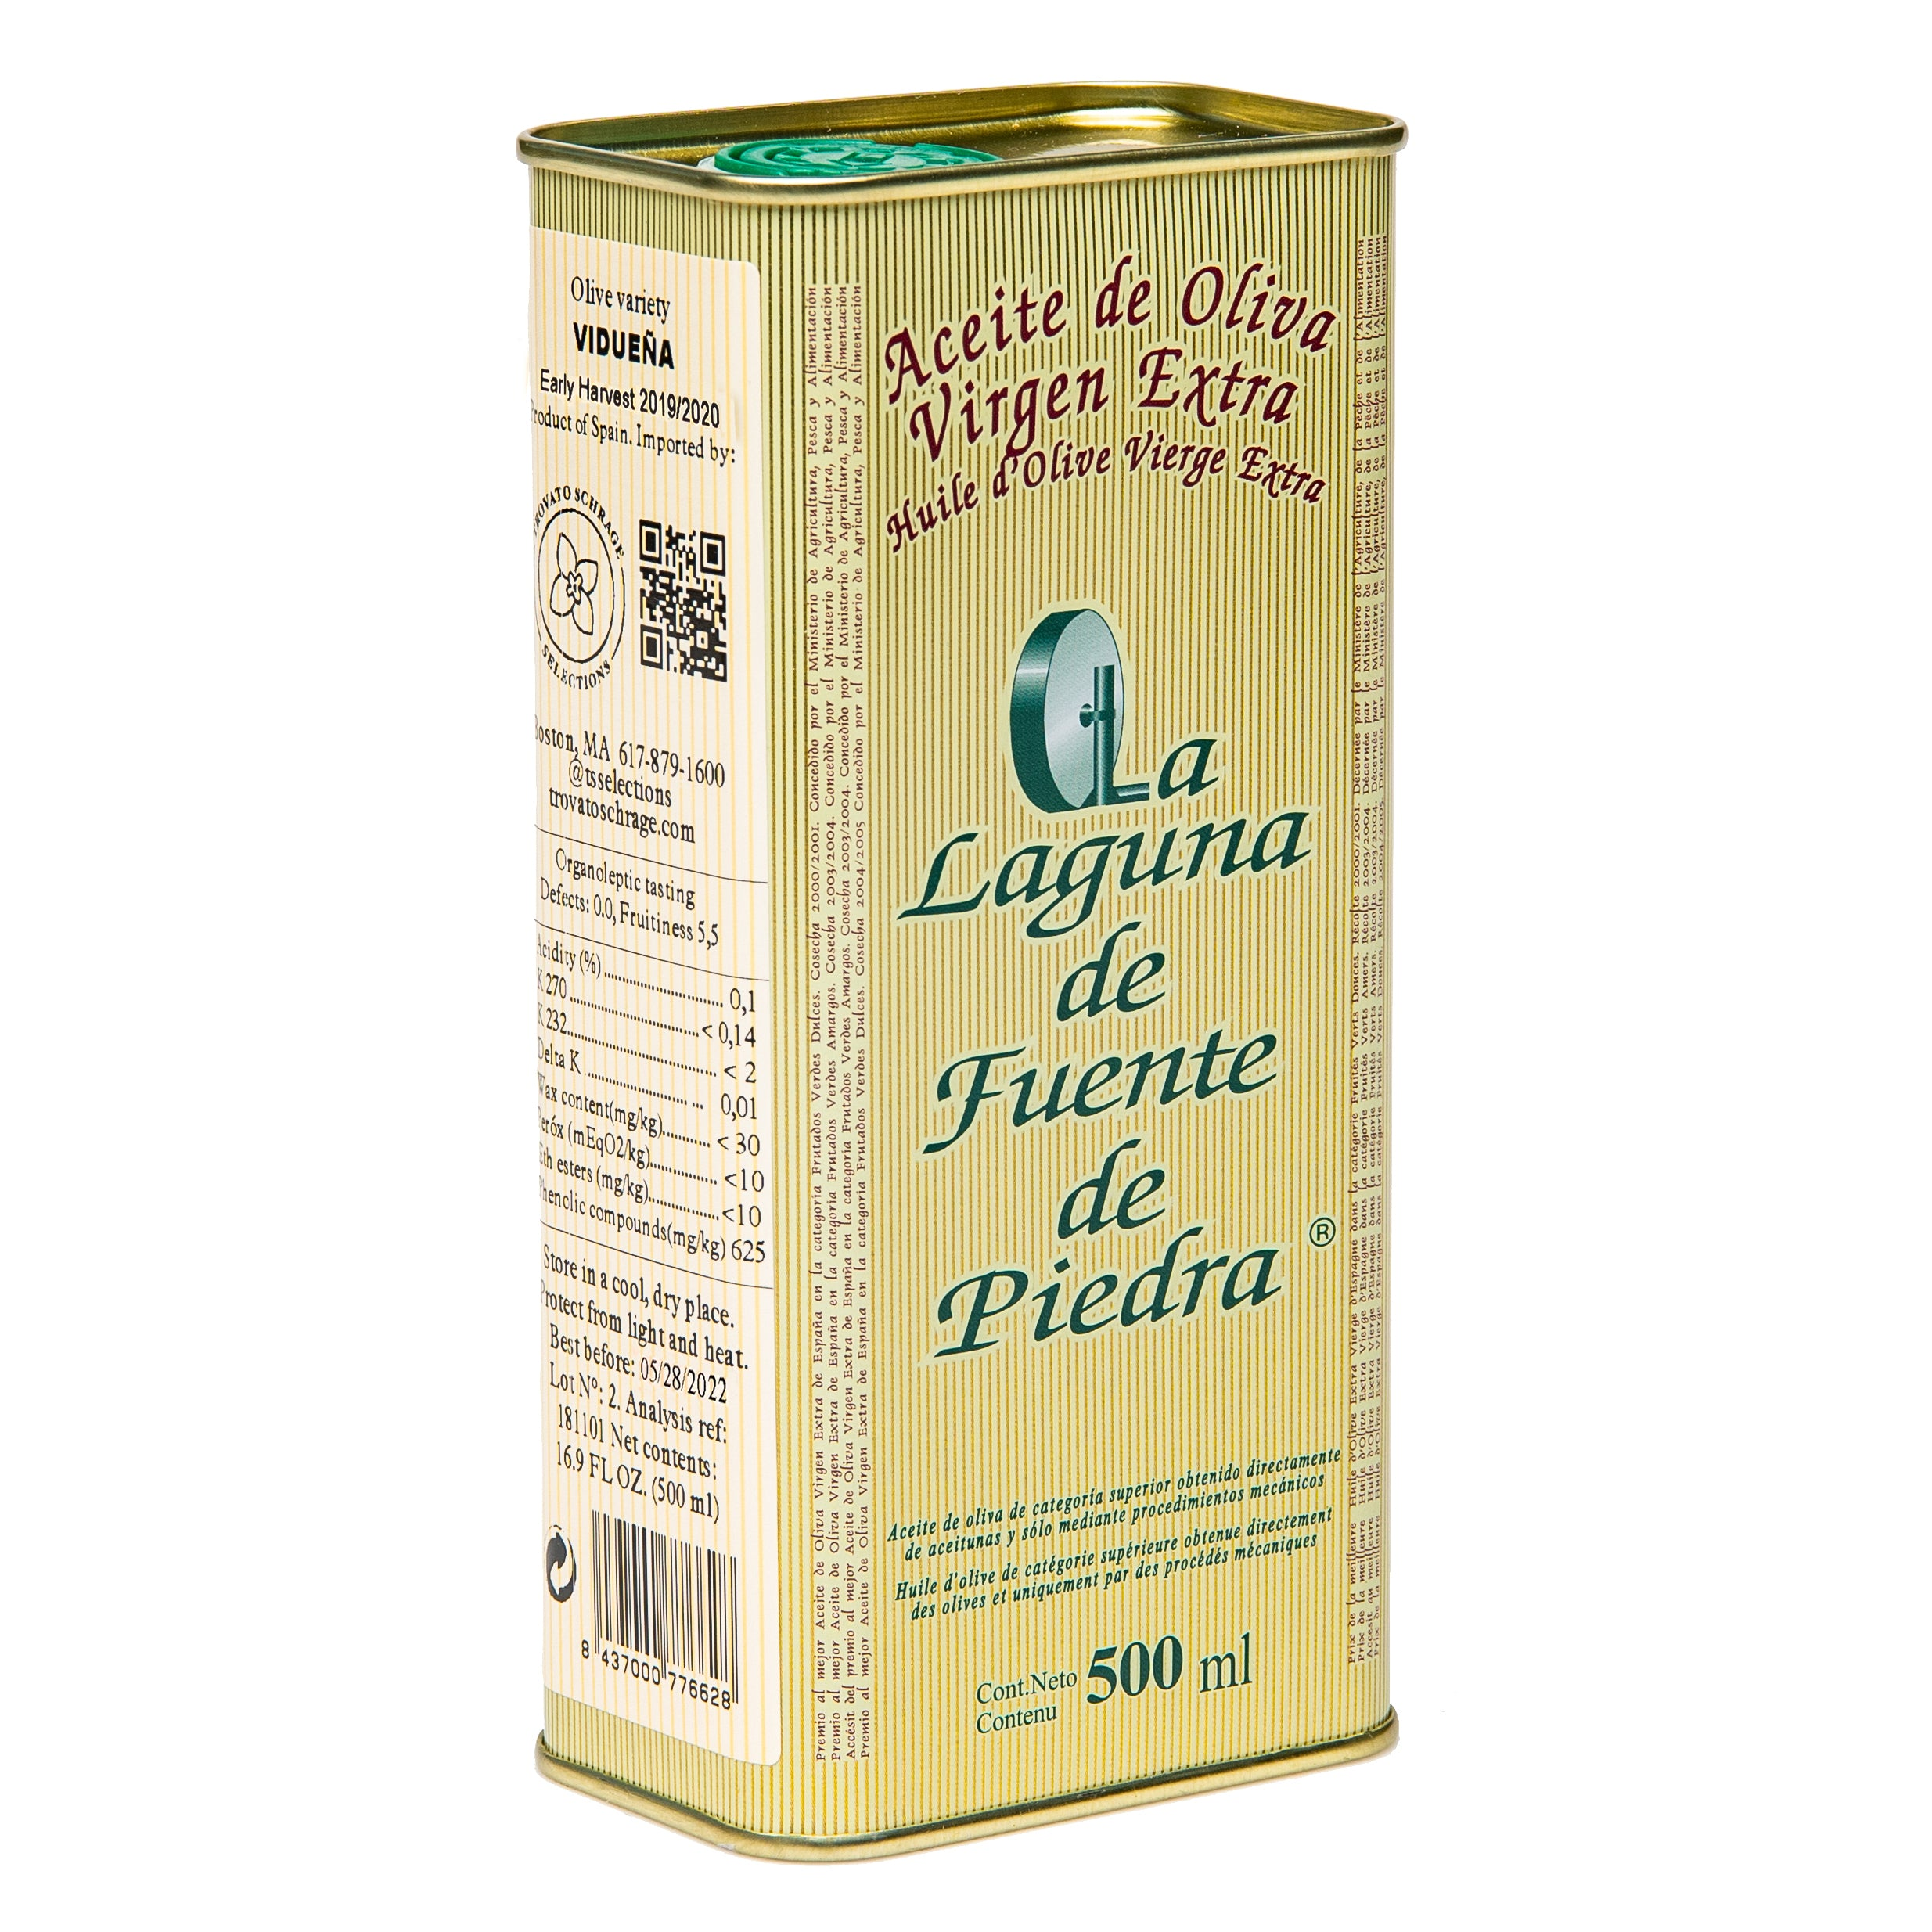 Lechin Extra Virgin Olive Oil 500ml